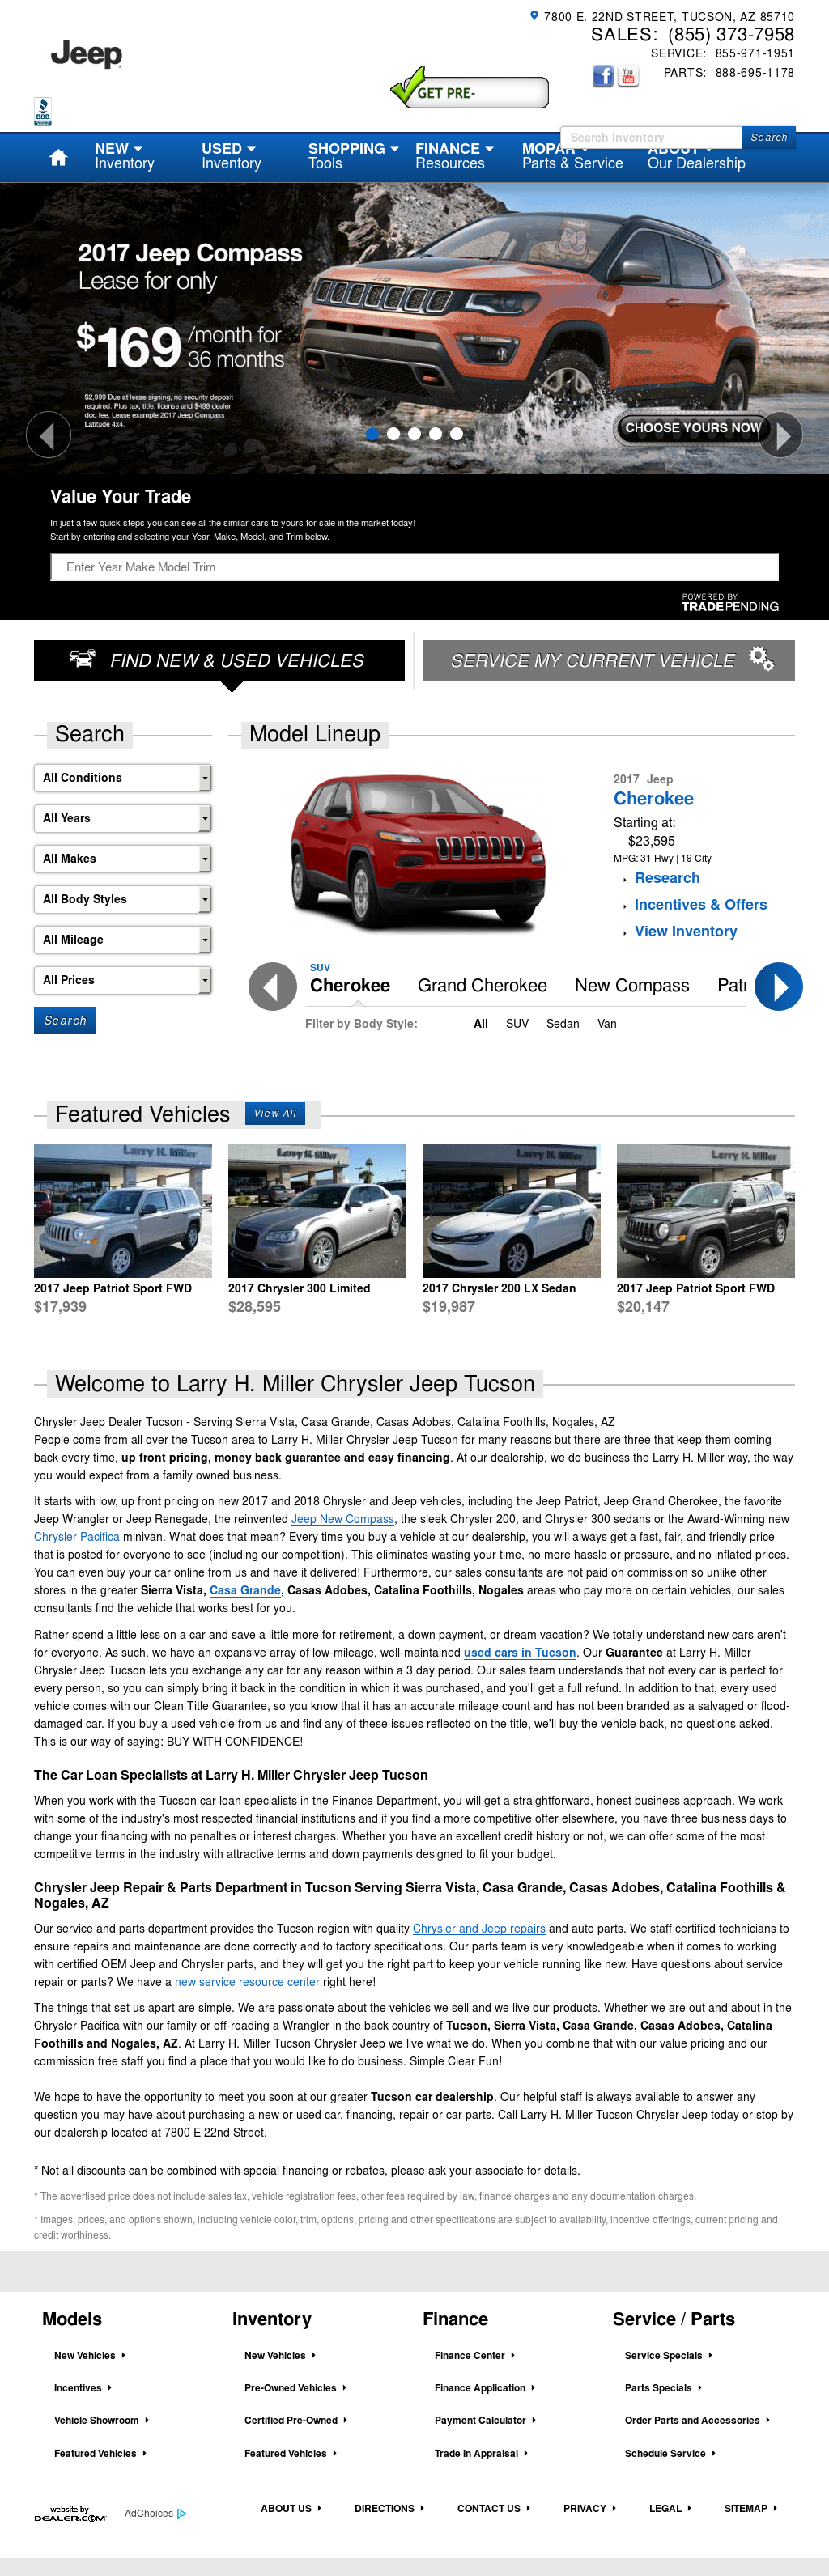 Larry H. Miller Chrysler Jeep Tucson Website History